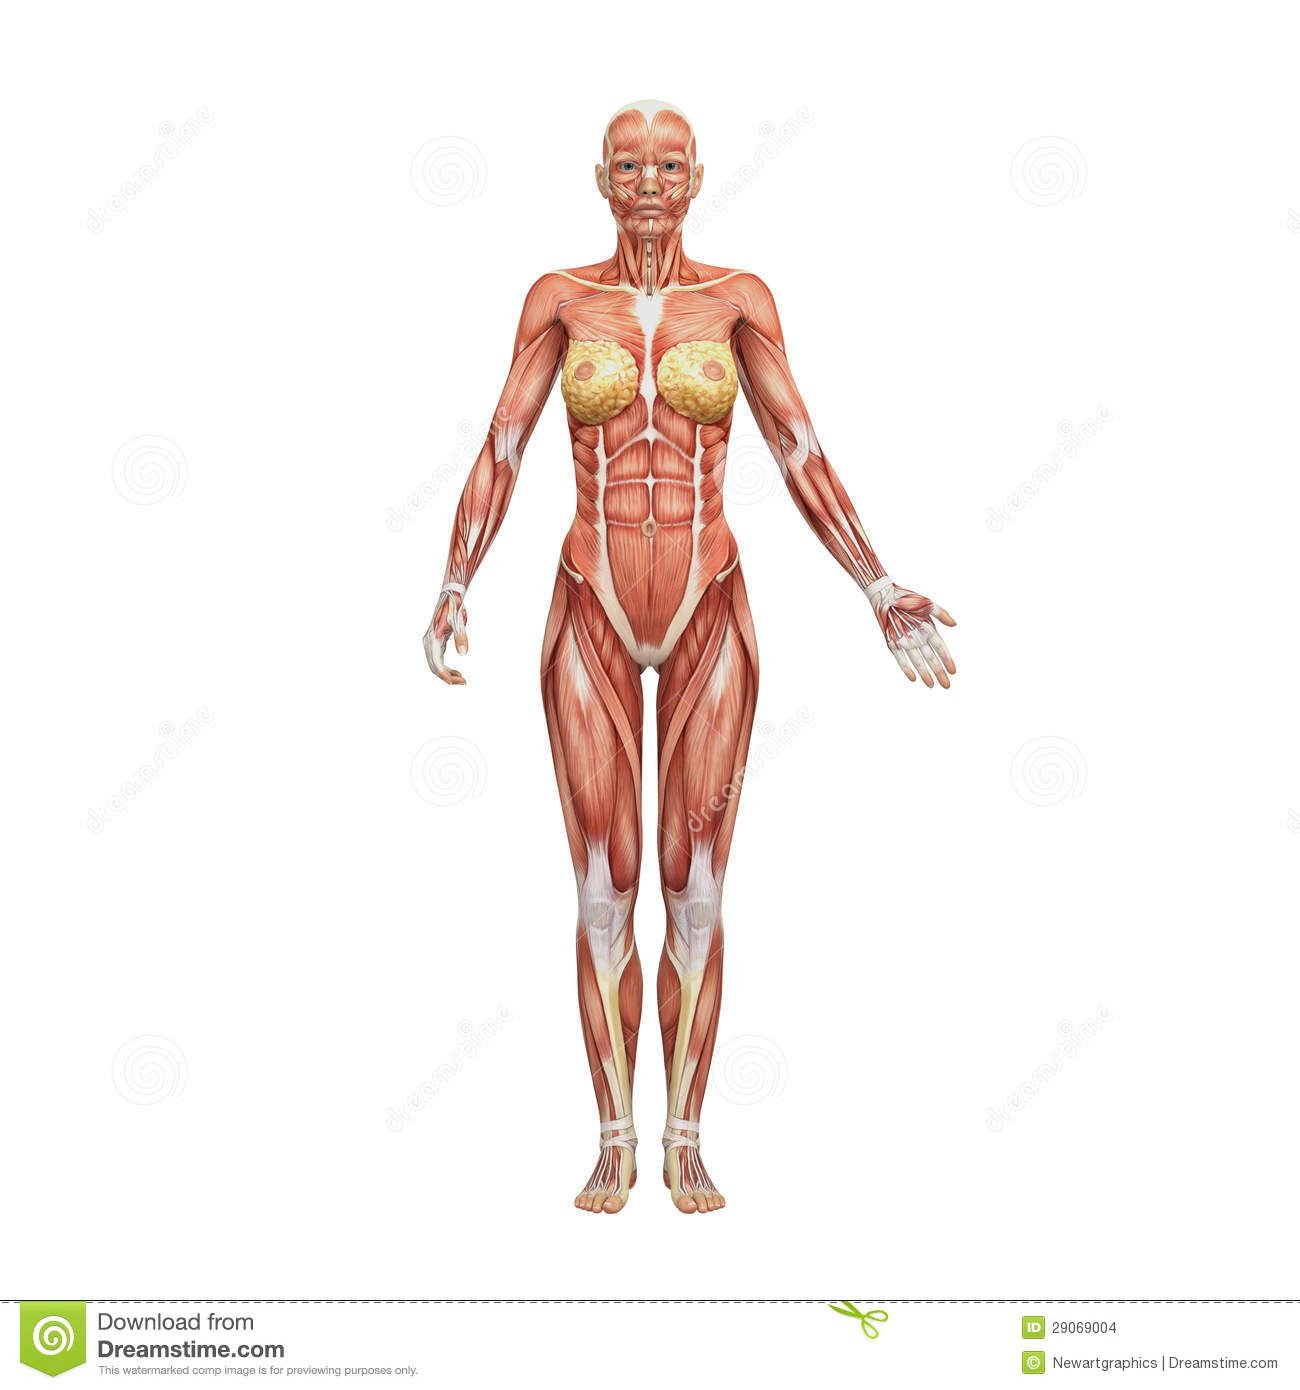 Athletic female human anatomy and muscles | Anatomy Ref | Pinterest